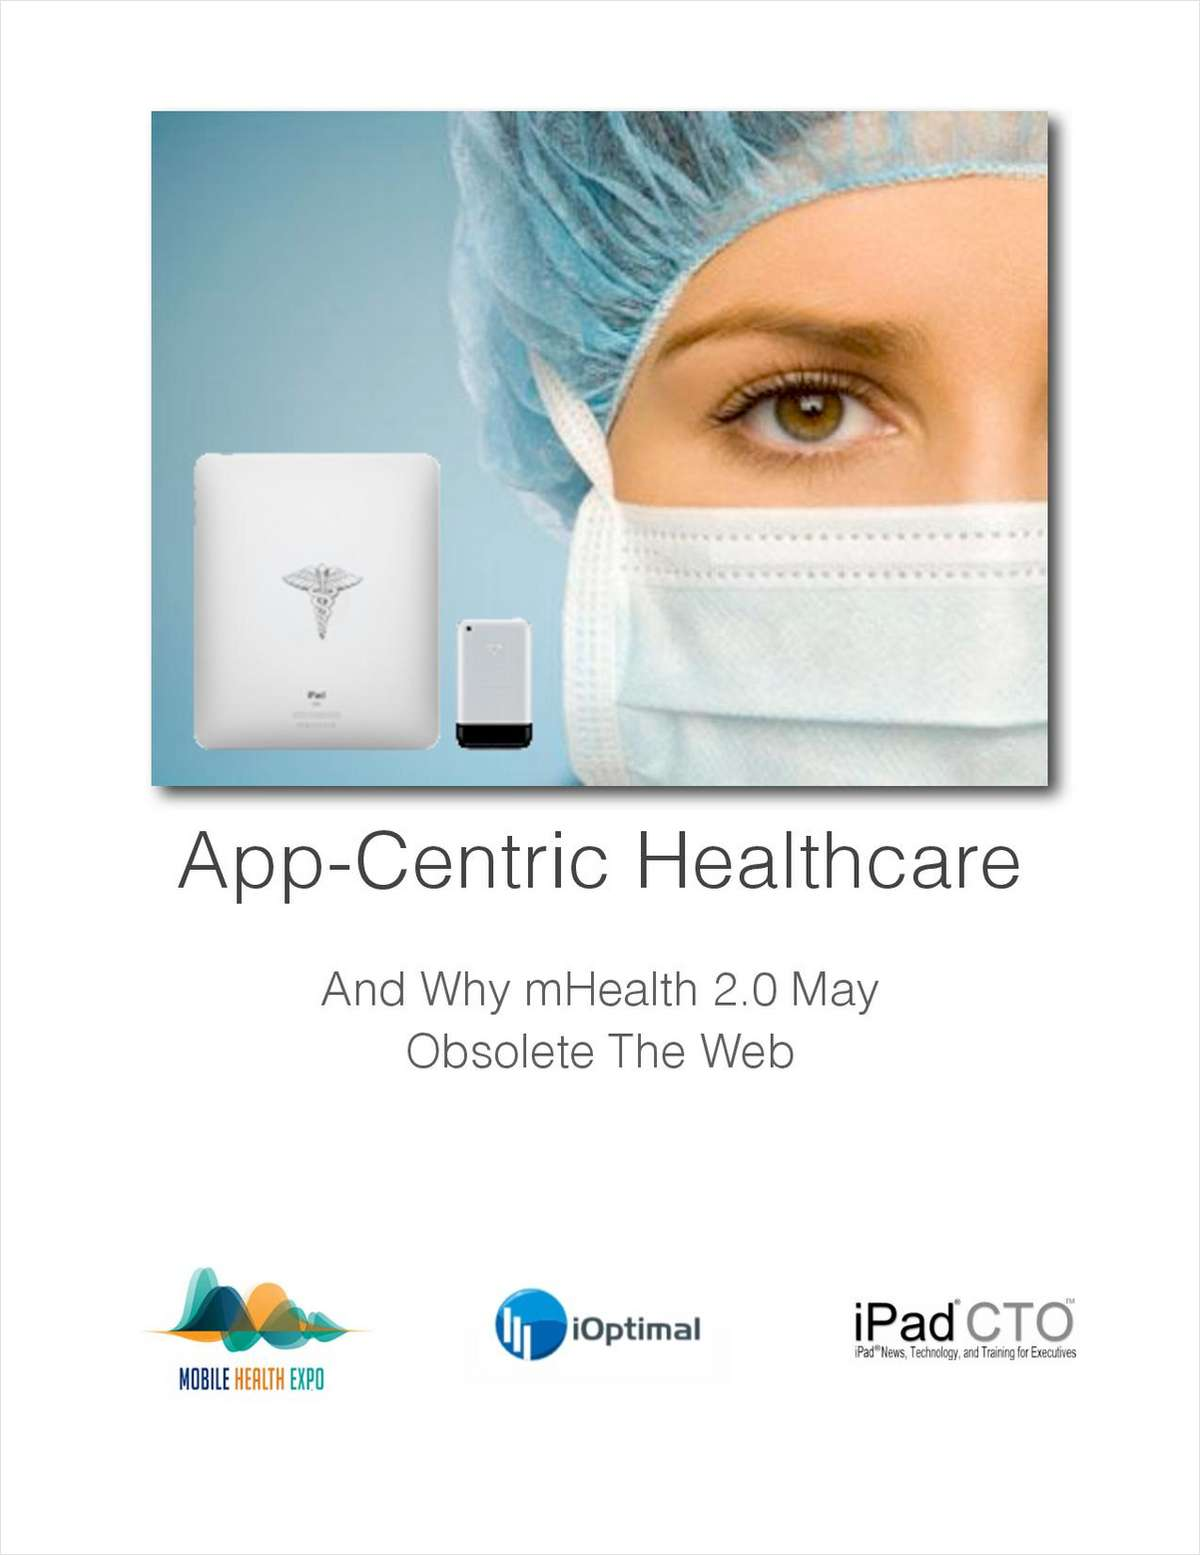 App-Centric Healthcare - And Why mHealth 2.0 May Obsolete The Web